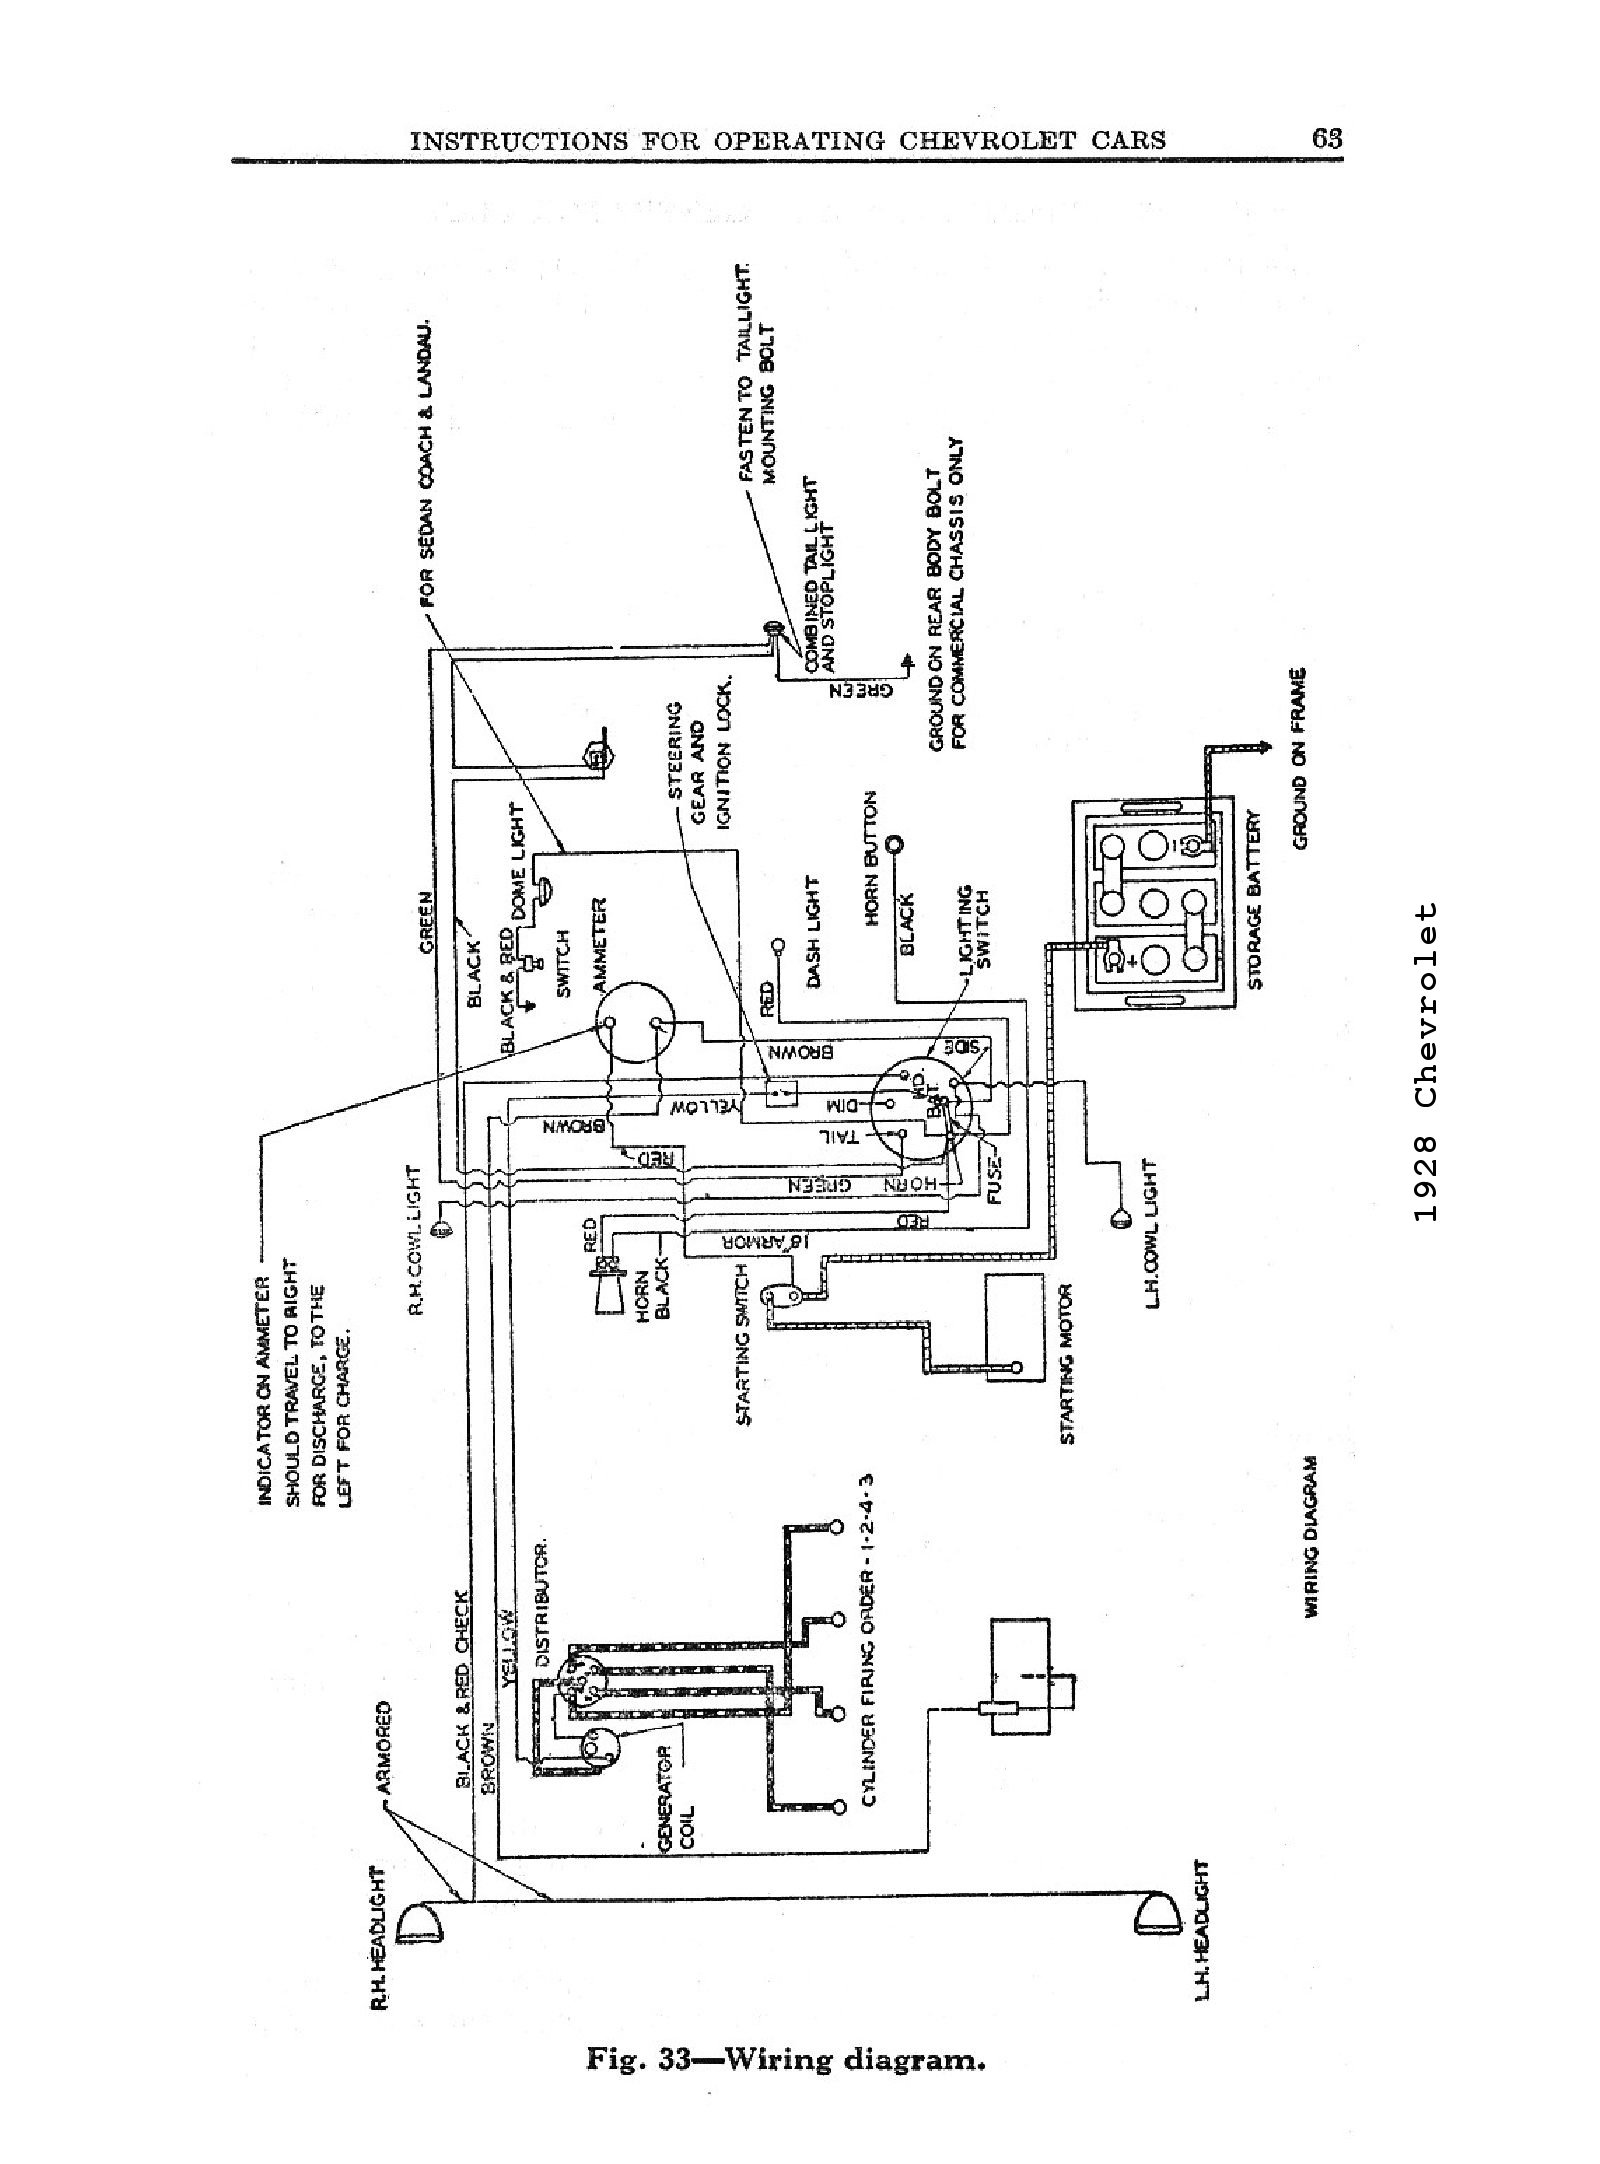 hight resolution of 1954 plymouth wiring diagram wiring diagram query 1954 plymouth wiring diagram 1954 plymouth wiring diagram